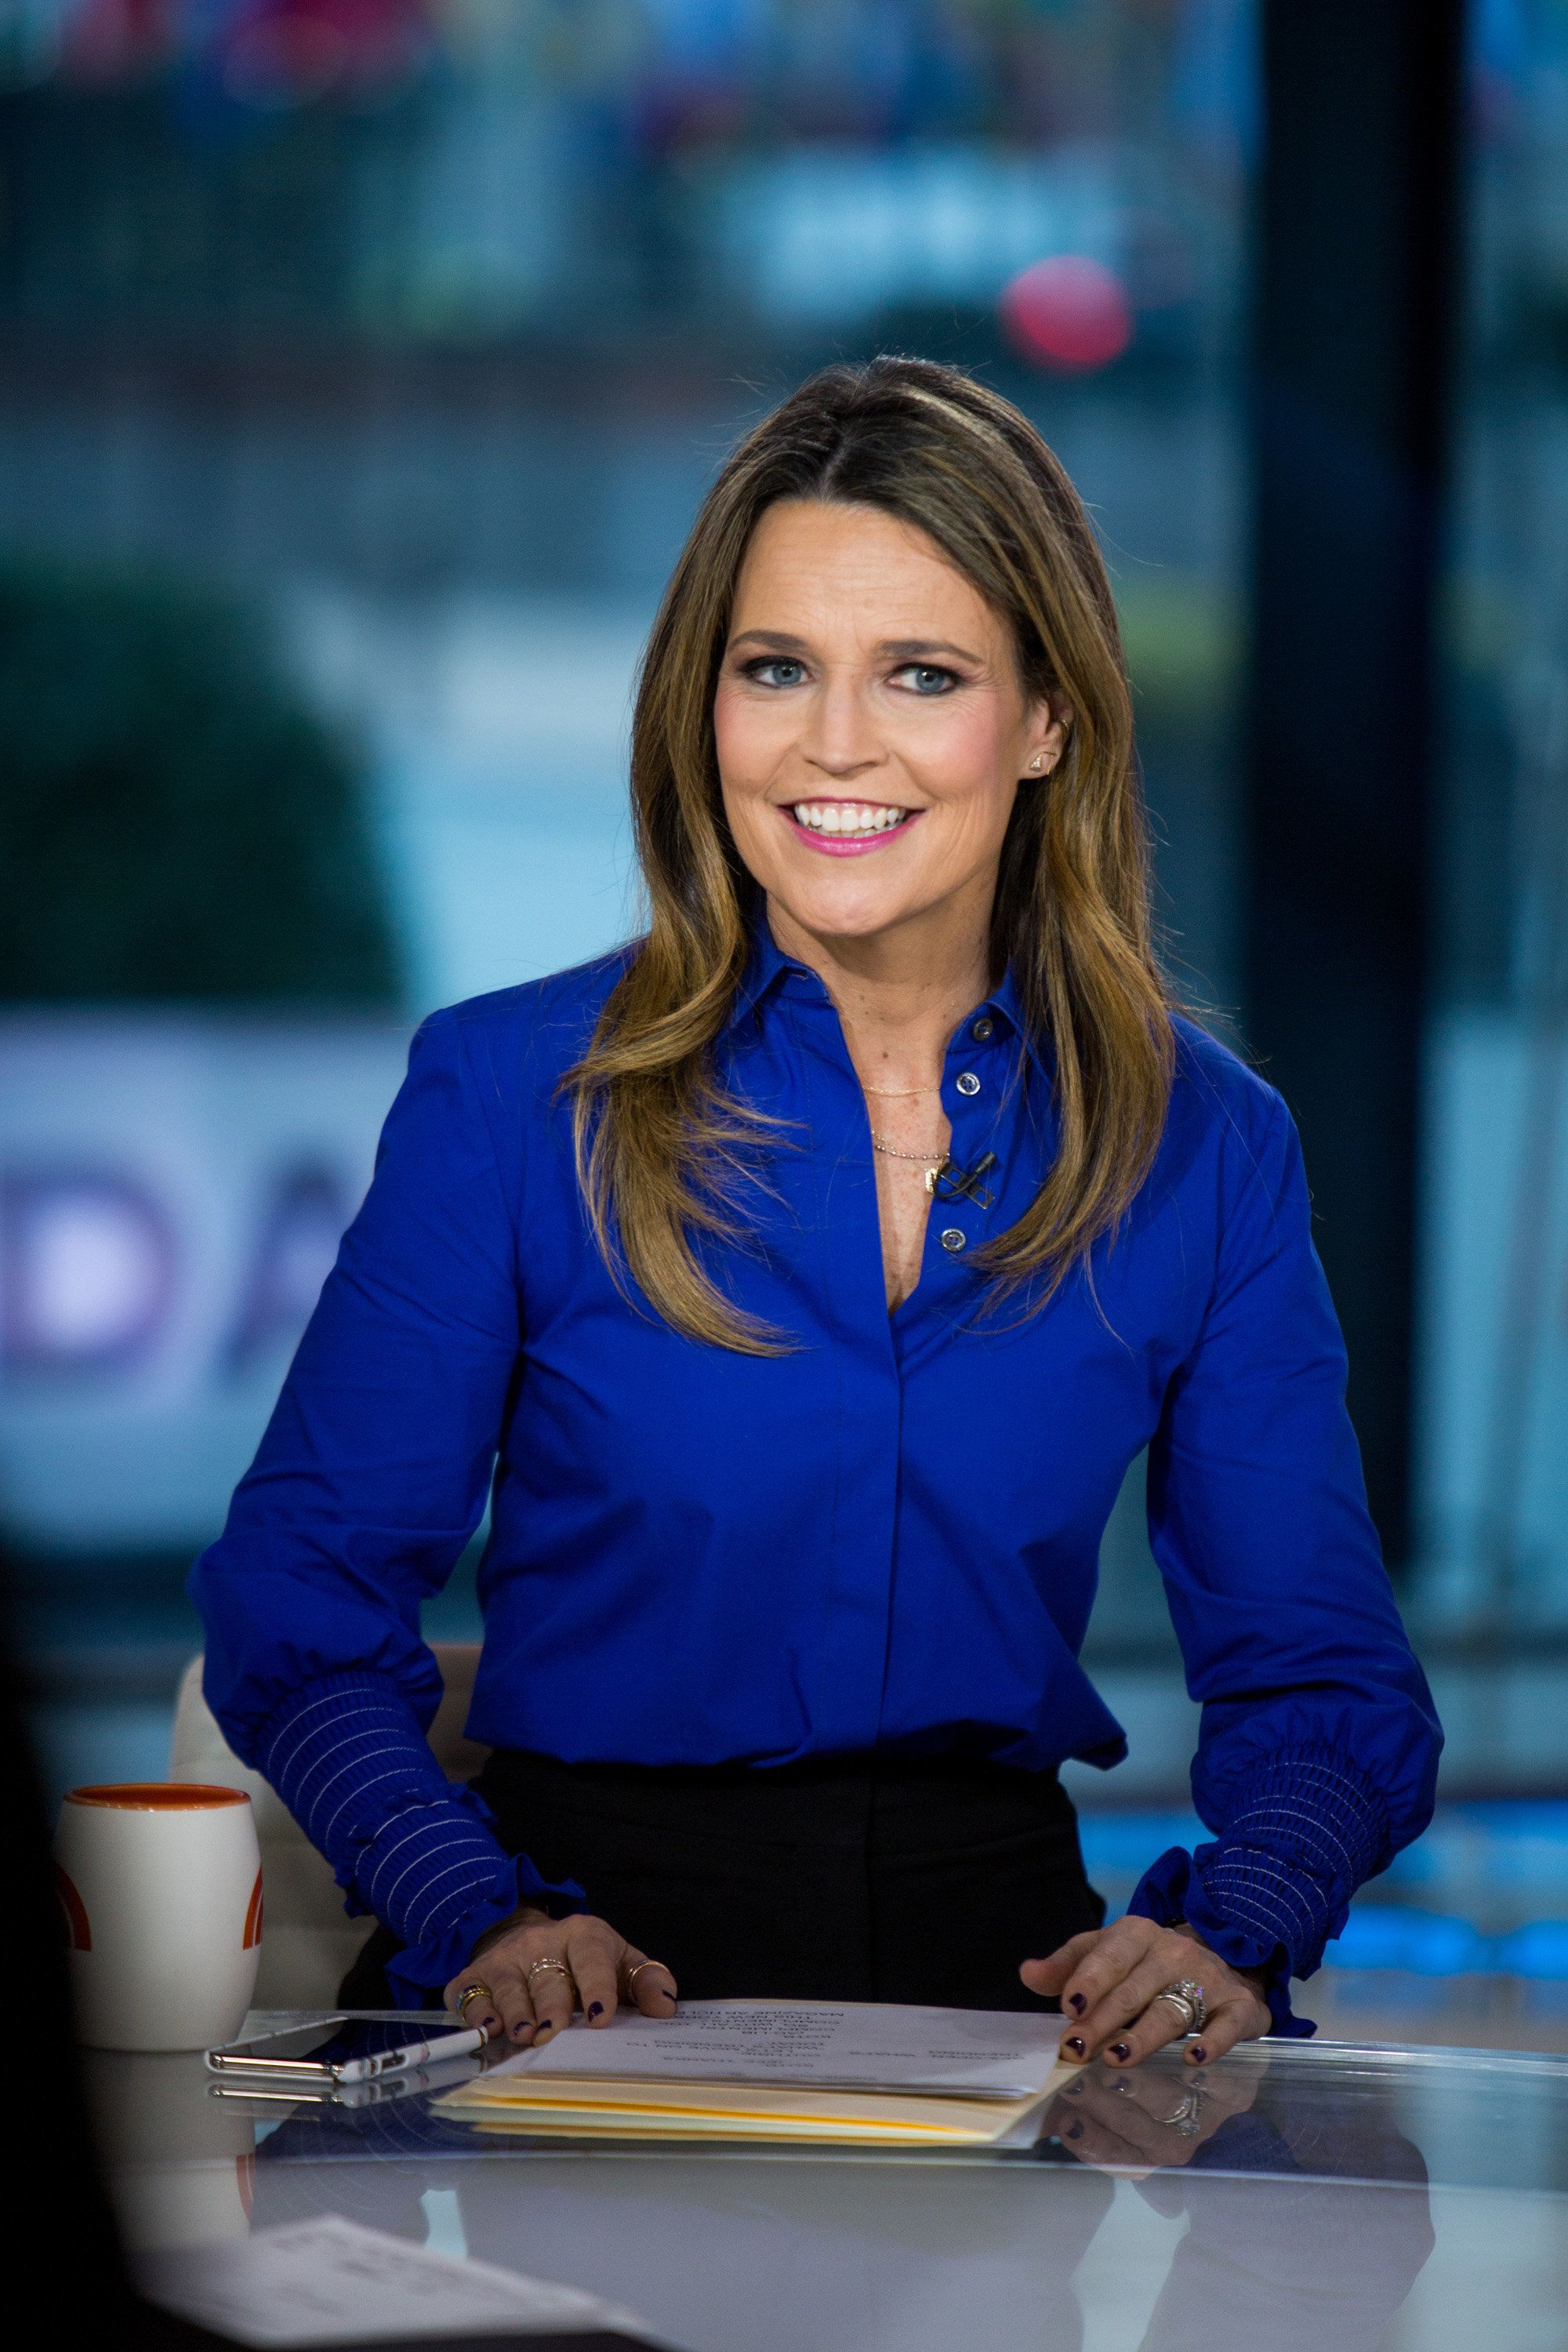 TODAY -- Pictured: Savannah Guthrie on Thursday, Jan. 18, 2018 -- (Photo by: Nathan Congleton/NBC/NBCU Photo Bank via Getty Images)